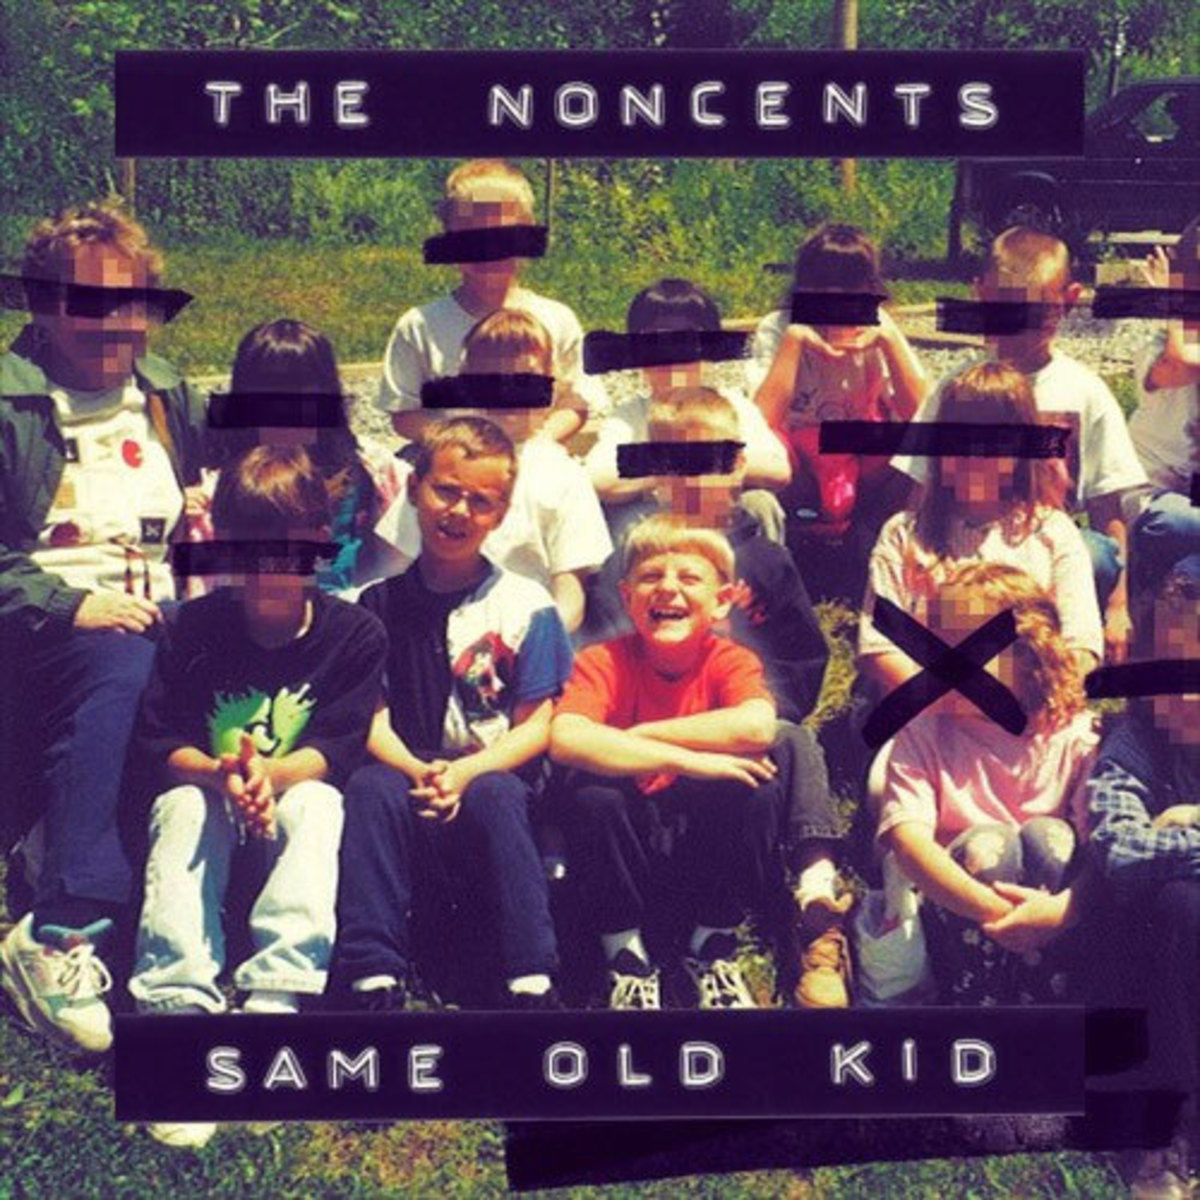 the-noncents-same-old-kid.jpg